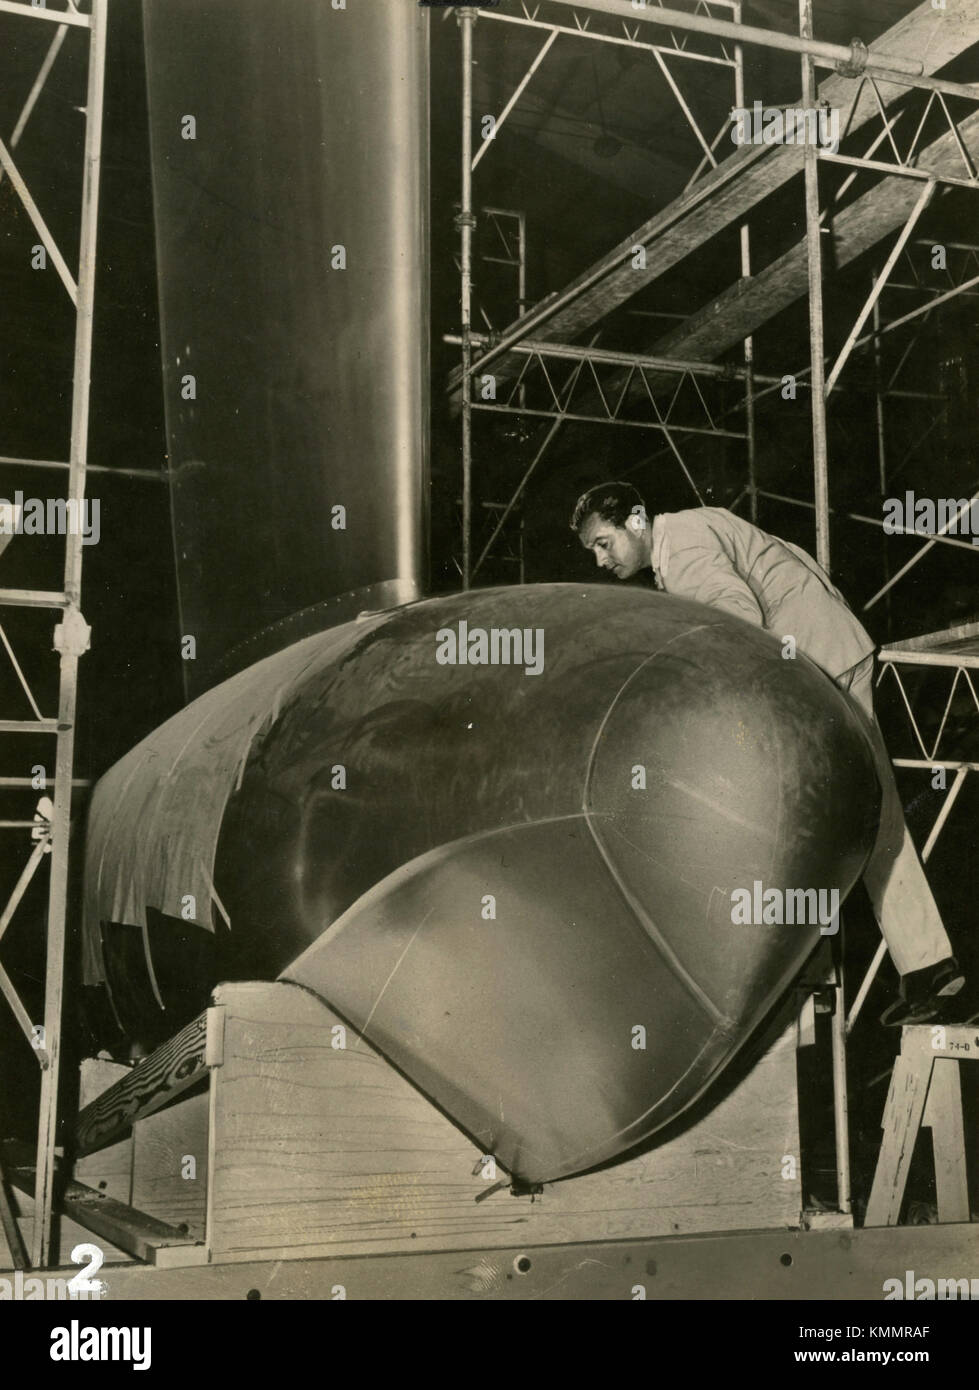 Mounting the wing of the airplane, 1946 - Stock Image